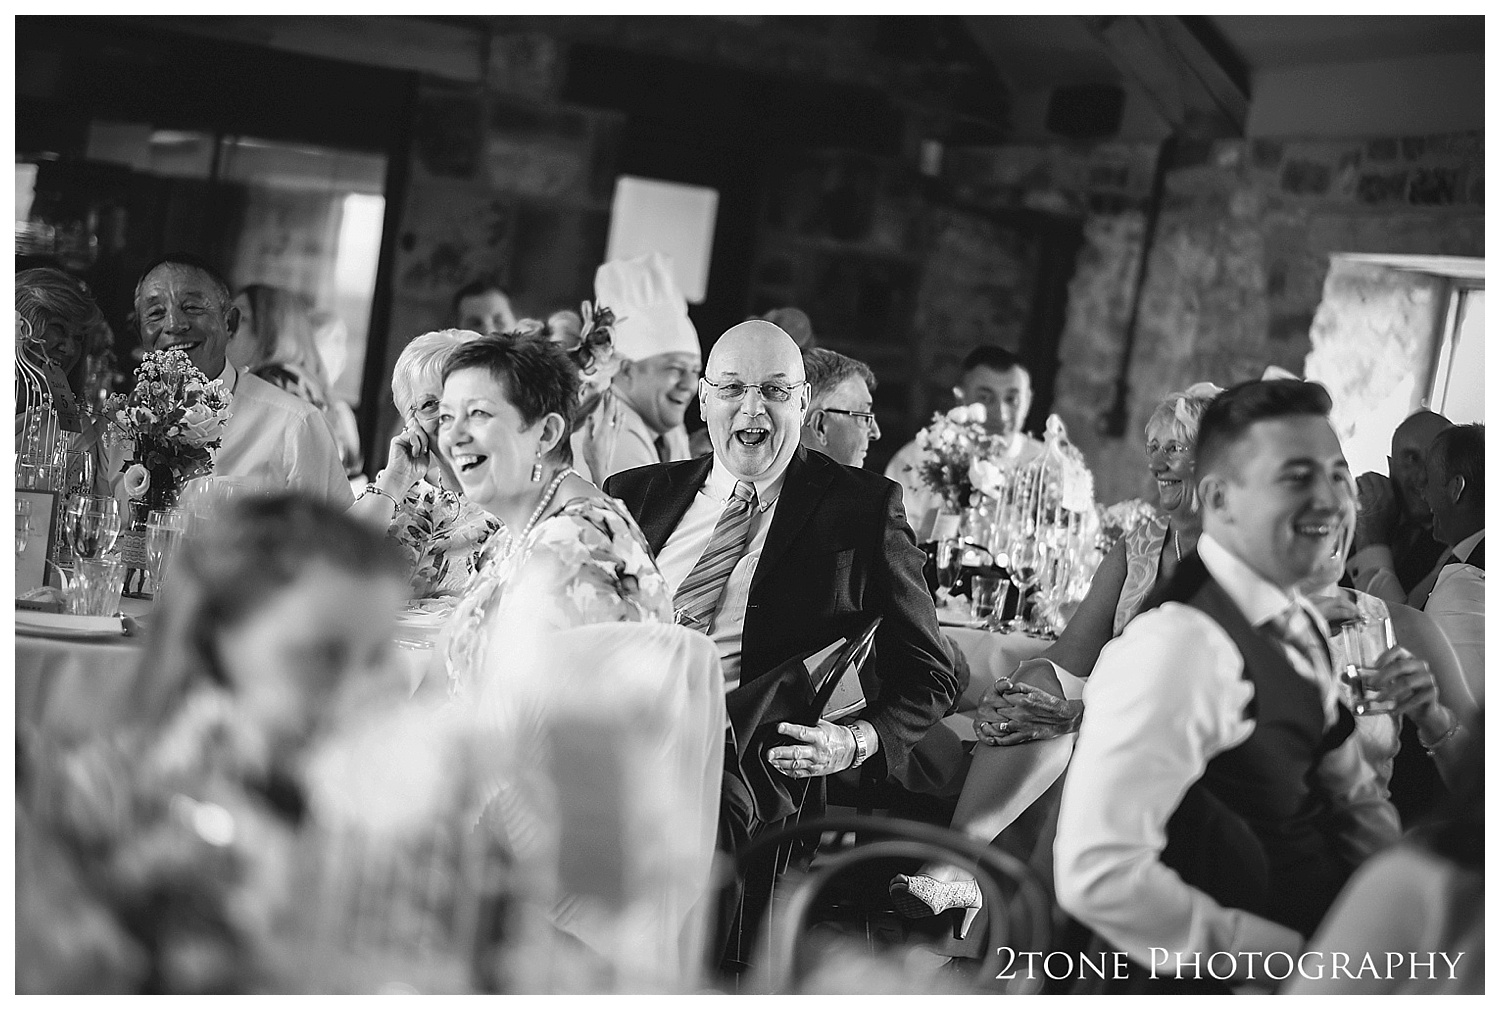 Healey Barm wedding photography 076.jpg